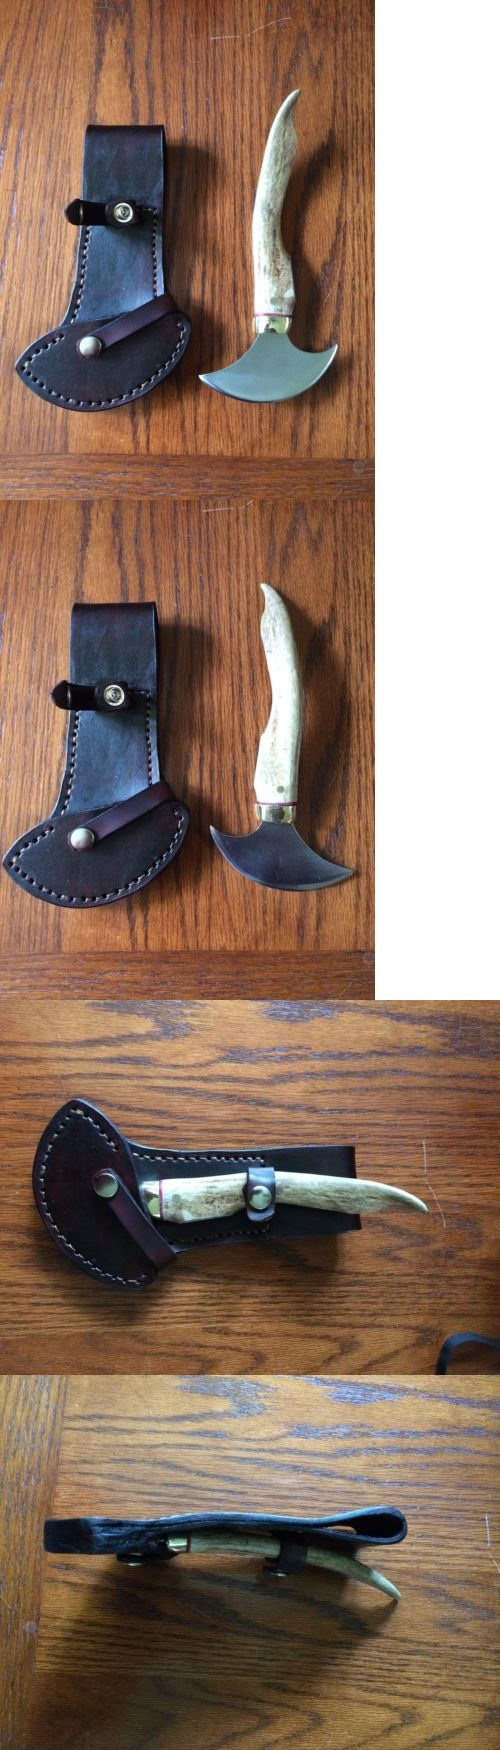 Butchering Knives and Tools 178084: Modified Skinning Ulu W Sheath -> BUY IT NOW ONLY: $55 on eBay!